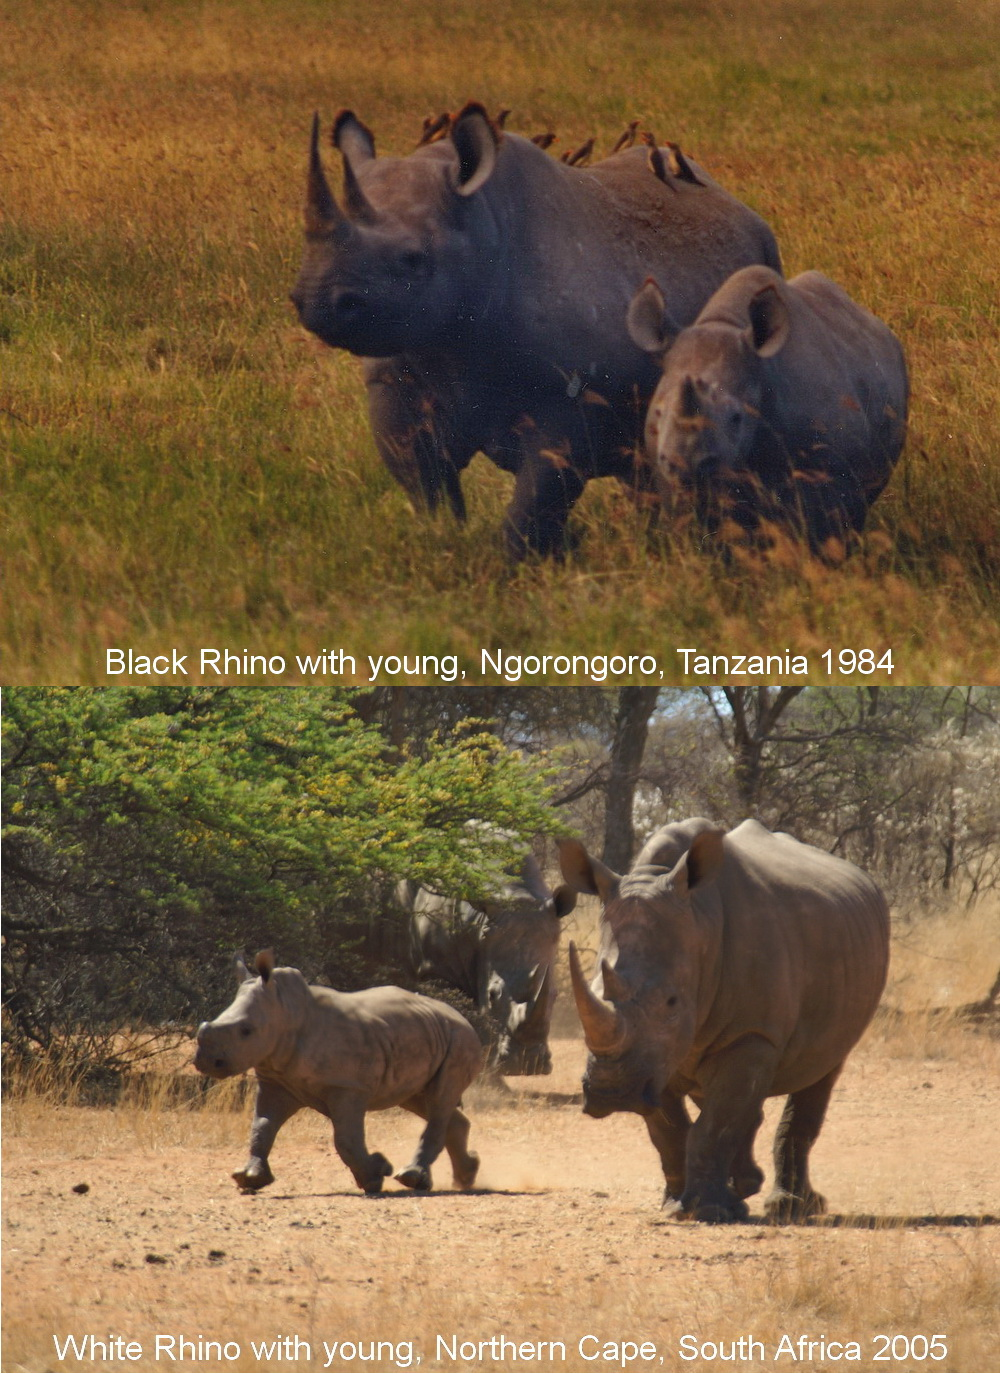 In 1984, the southern White (or square-lipped) Rhinoceros was critically endangered, while the Black (or hook-lipped) Rhinoceros was relatively safe. How things change!